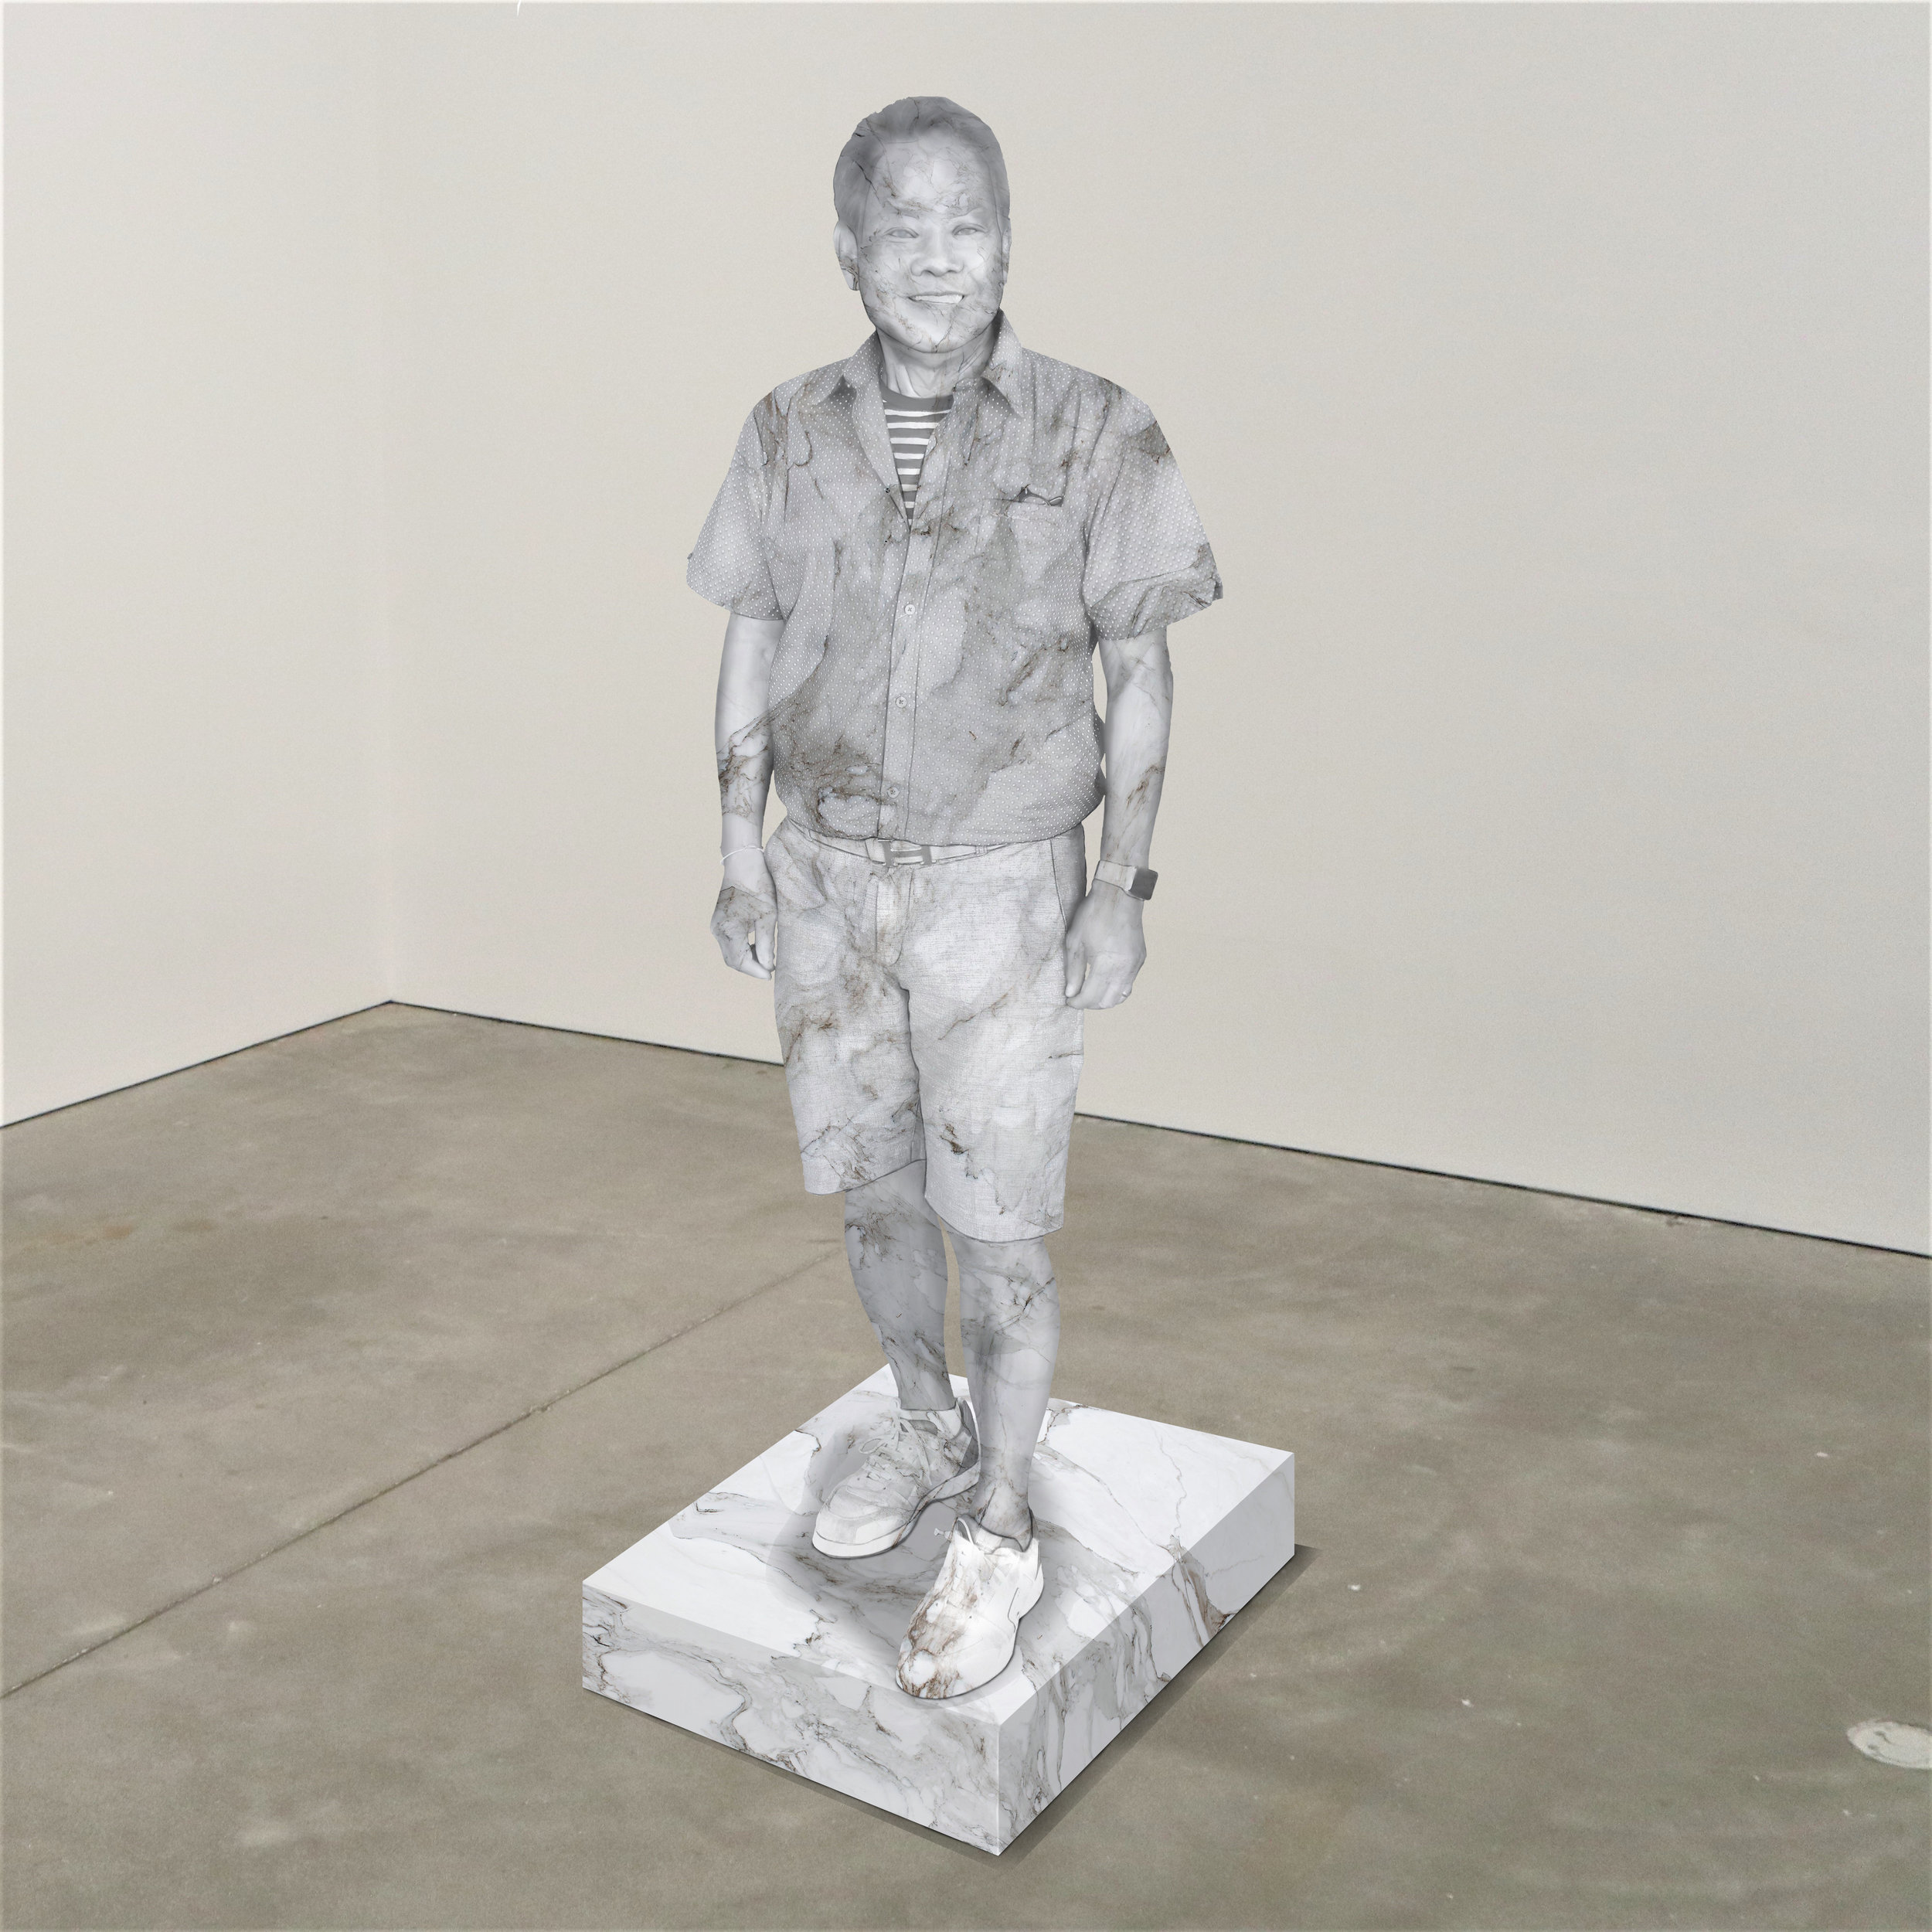 """Viewer,"" marble, Institute of Contemporary Art, Boston   2018  JPG  During an installation at the Institute of Contemporary Art in Boston, viewers were invited to imagine themselves as statues in the ICA's permanent collection. Participants were photographed posing as a statue they felt represented themselves, created a name for their fictional statue, and selected a stone from which their statue would be made. Professional and amateur digital artists were commissioned to create renderings of the statues, which were superimposed on photos of the ICA's permanent collection gallery space."